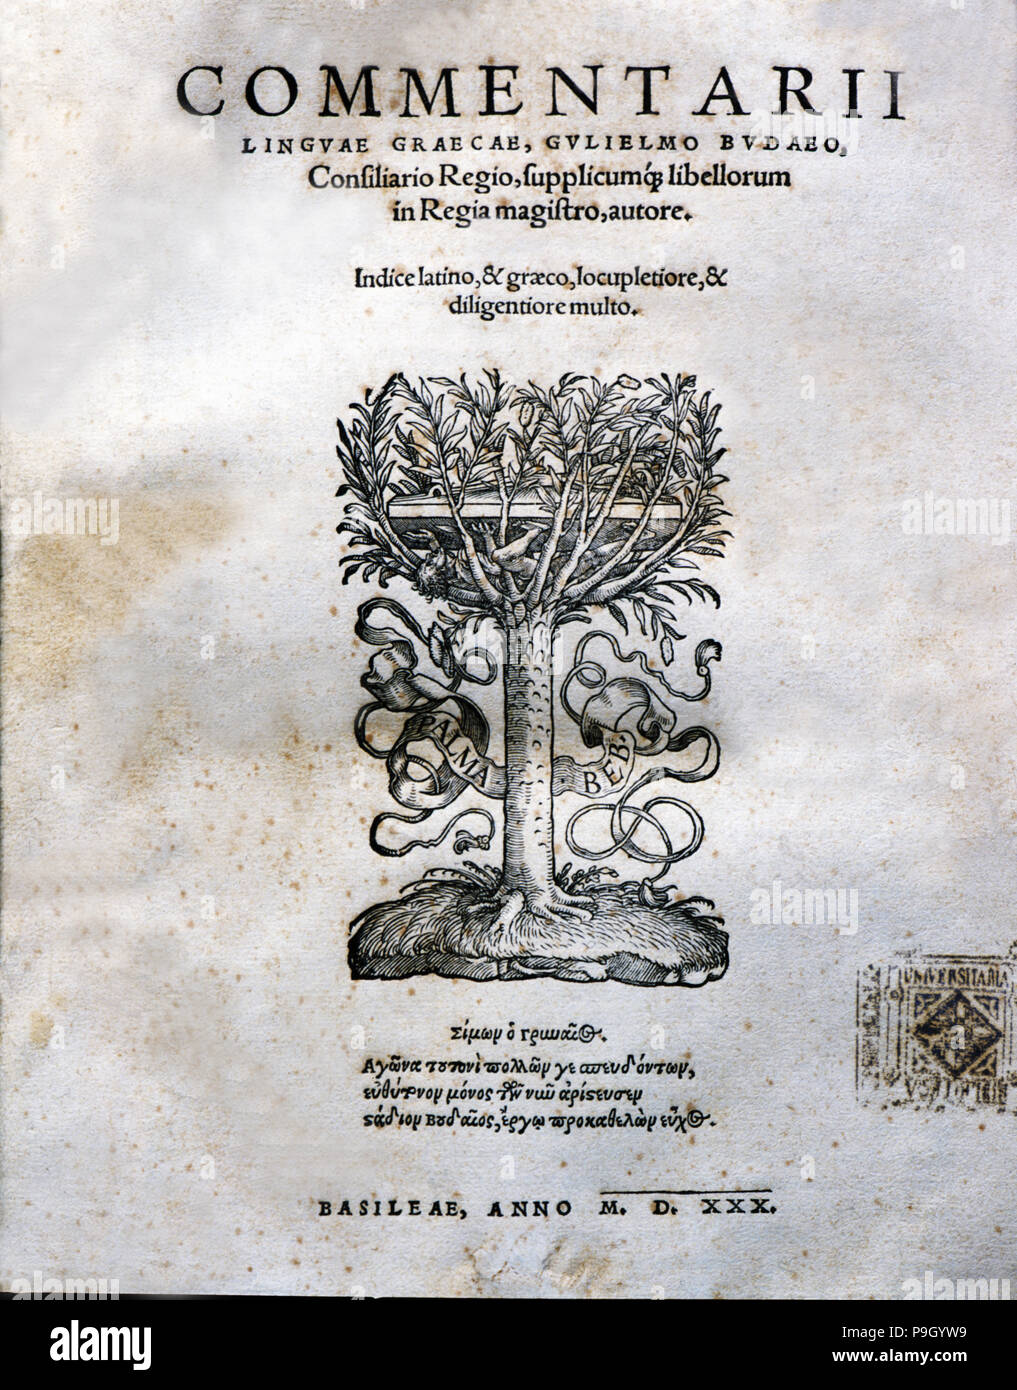 Commentari', comments in Greek language, cover of the 1530 edition of Basel. - Stock Image